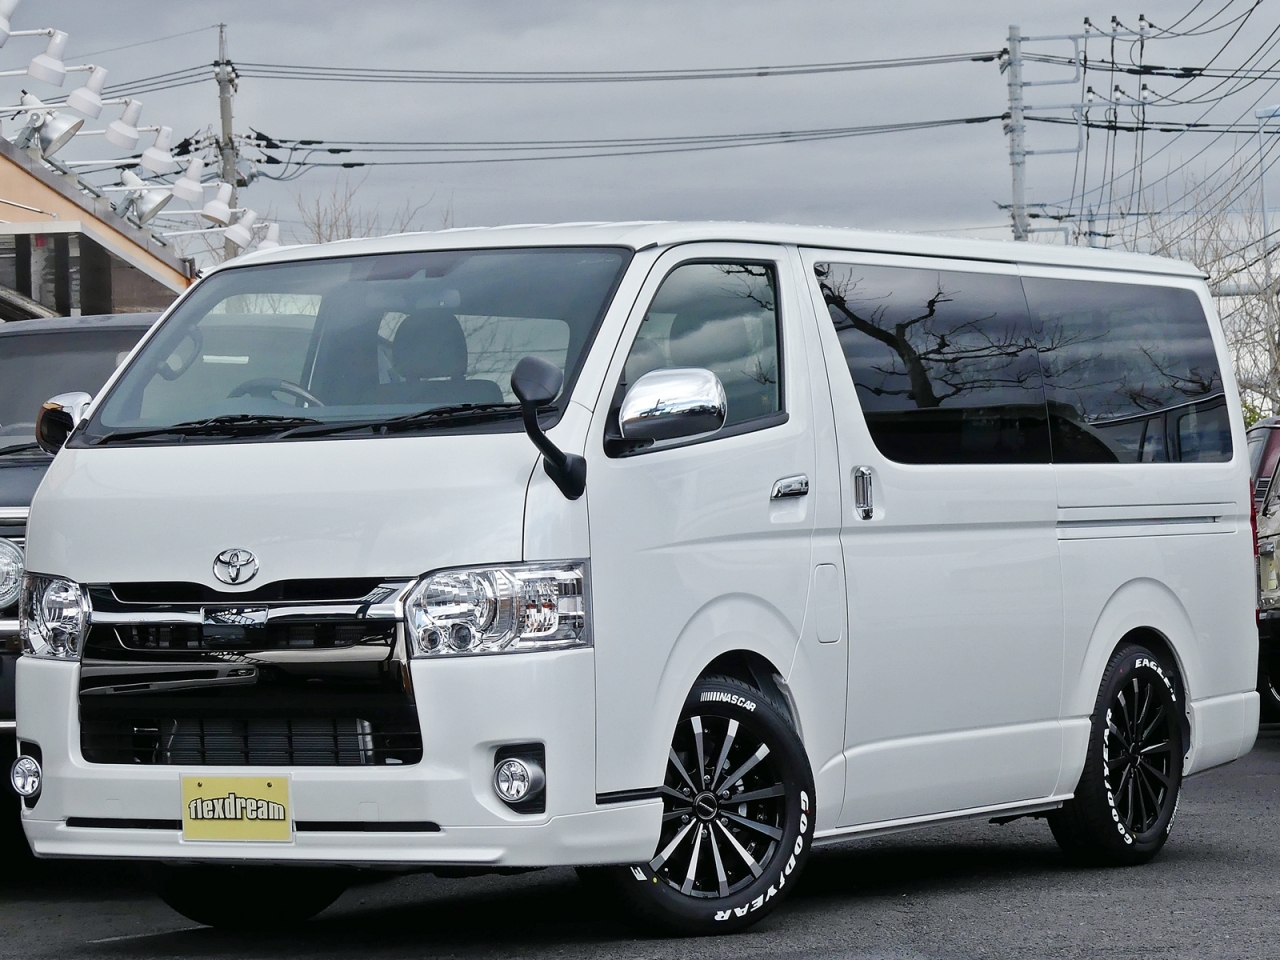 ハイエースVHIACE 50th Anniversary Limited